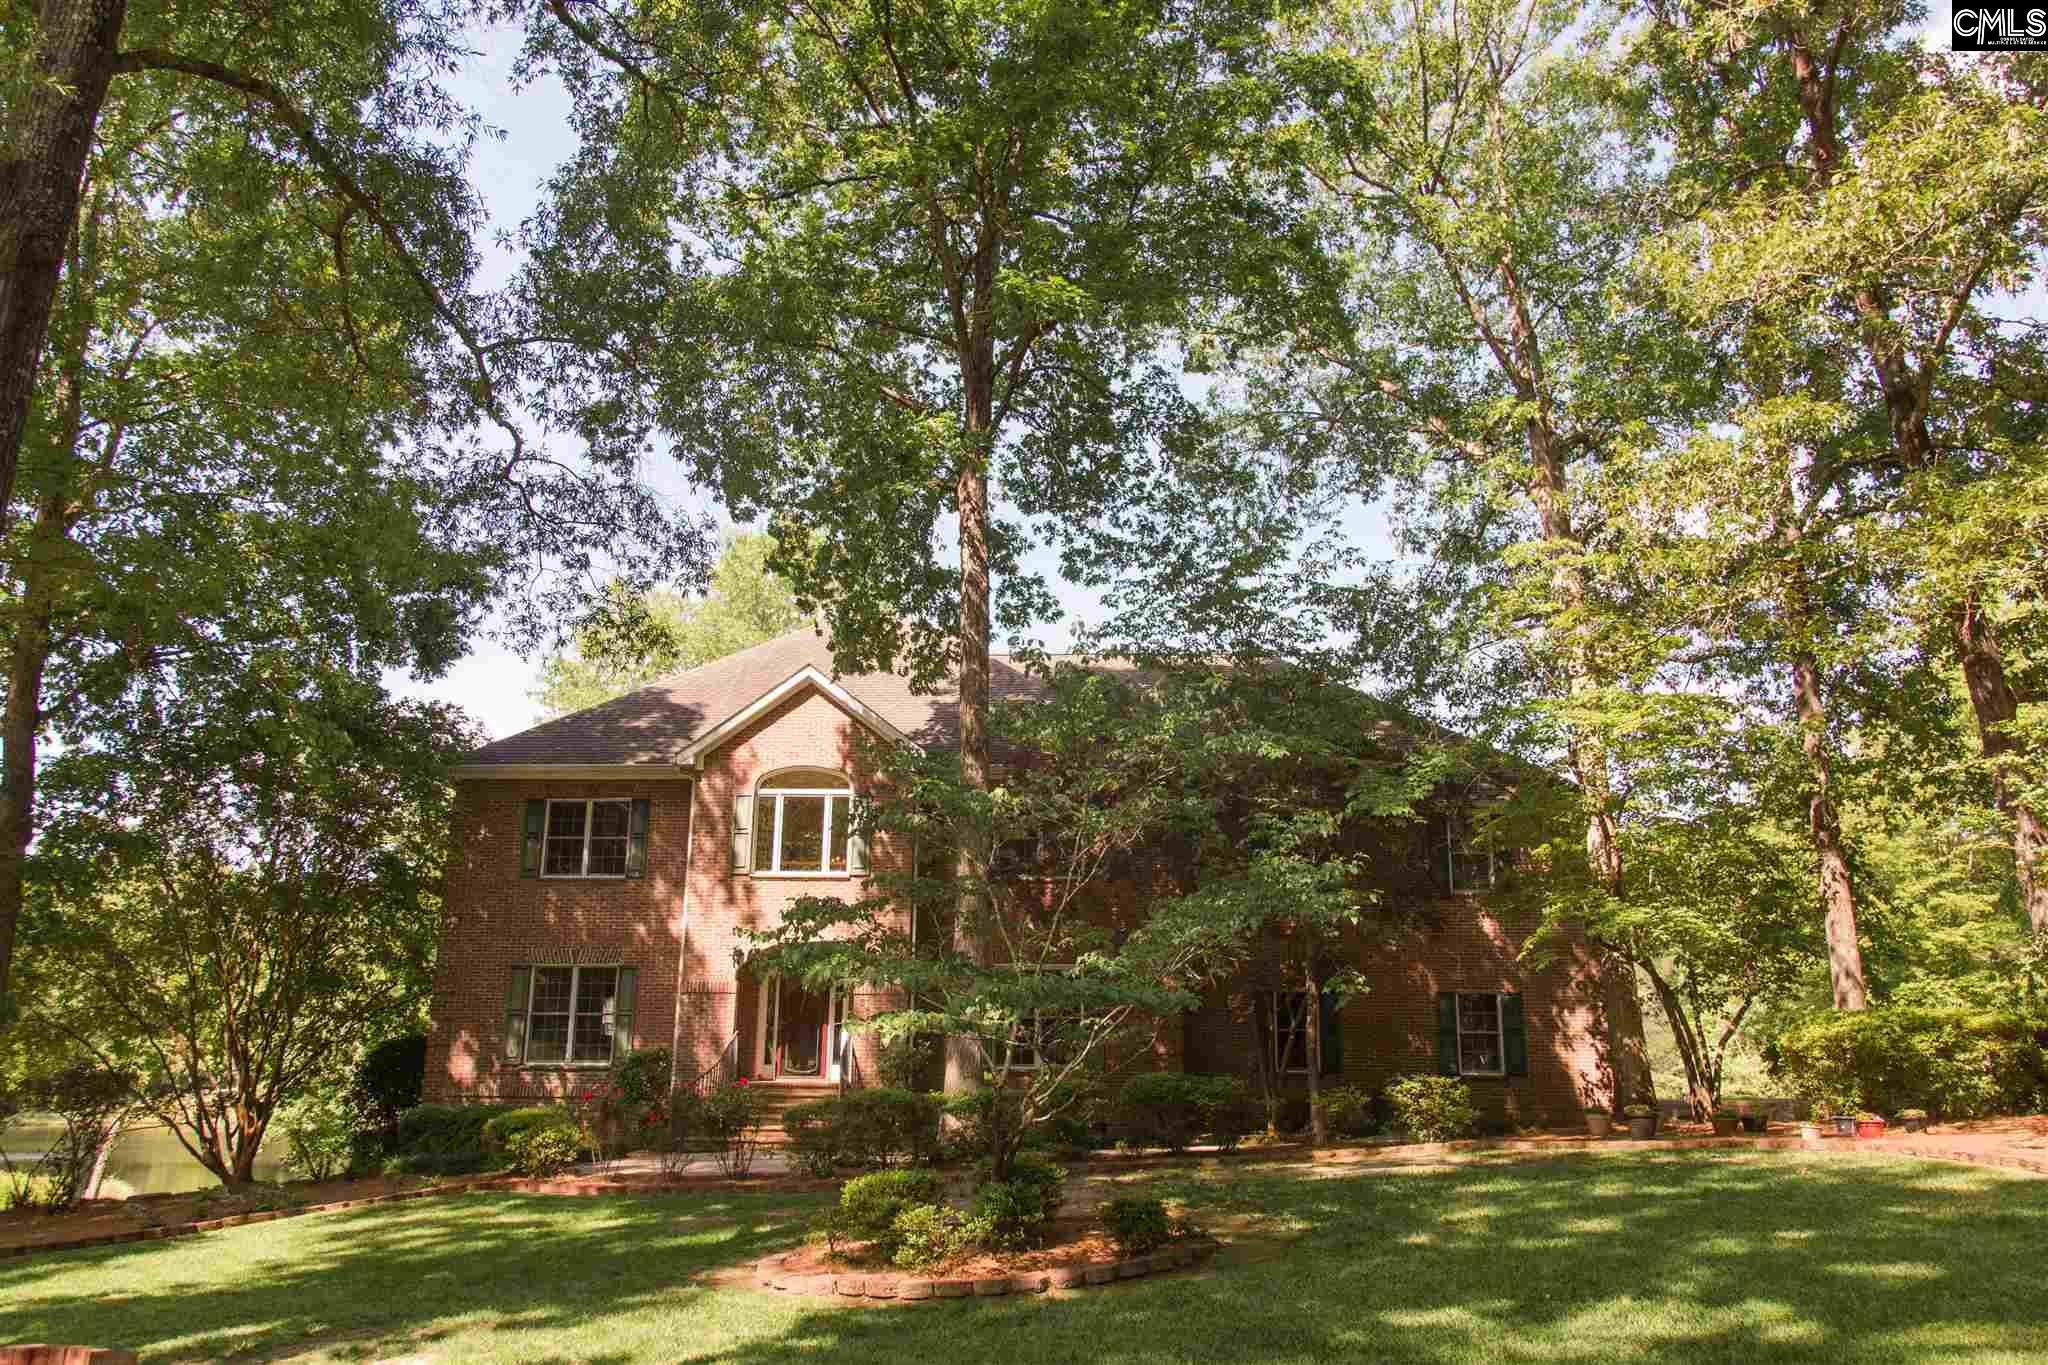 260 Lakeview Lugoff, SC 29078-9655